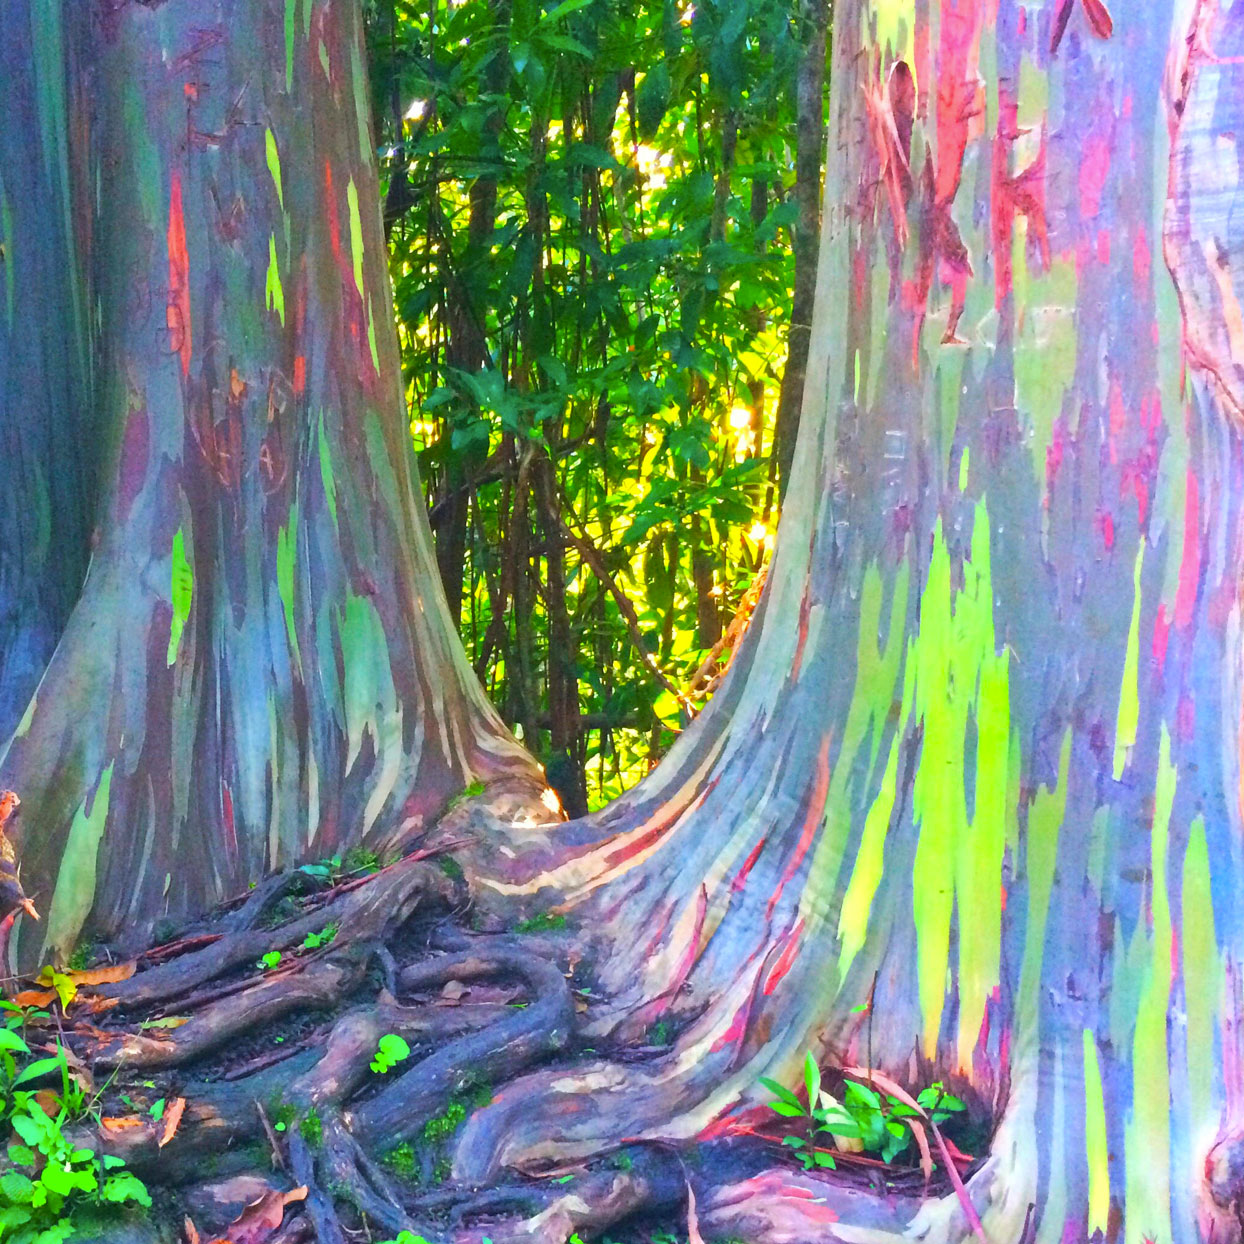 Rainbow Eucalyptus Trees Look Too Beautiful to Be Real (But They Are!)